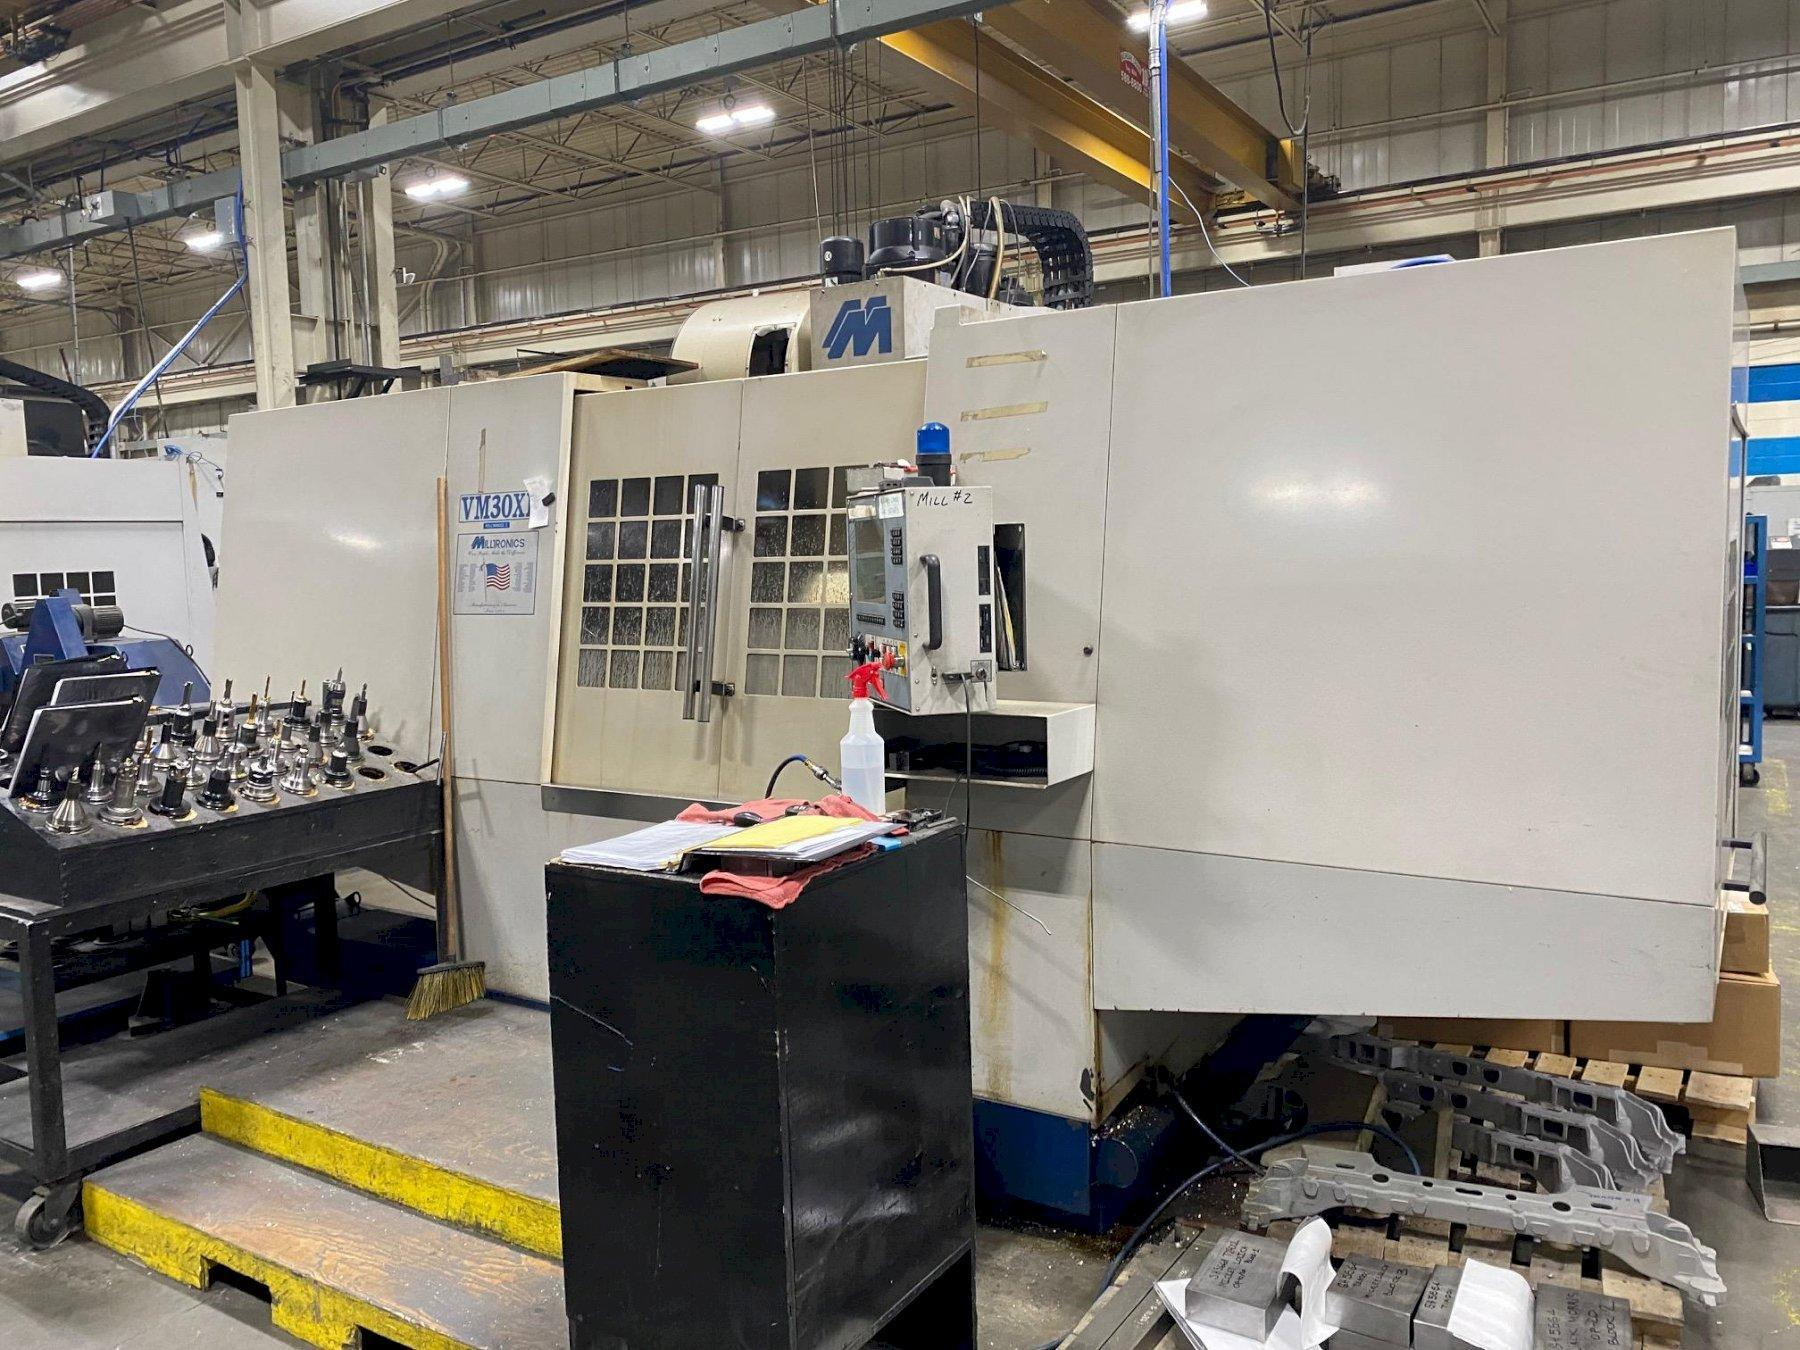 2007 Milltronics VM30XP Vertical Machining Center